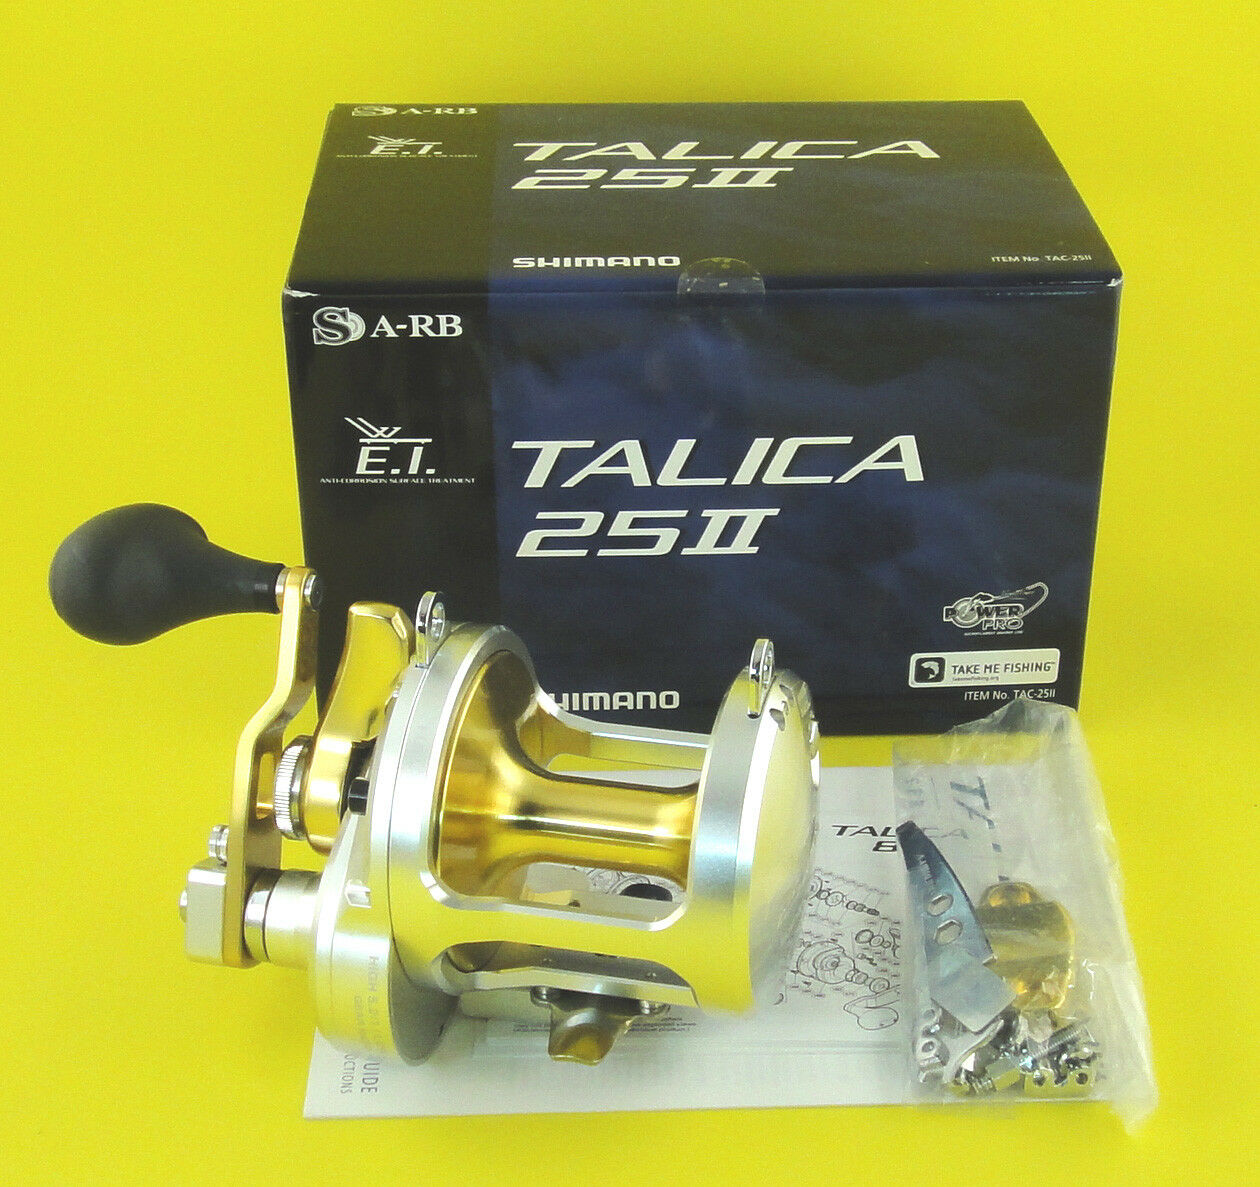 NEW SHIMANO TALICA 25 25II 2-SPEED REEL U.S SELLER FREE 1-3 DAYS DELIVERY